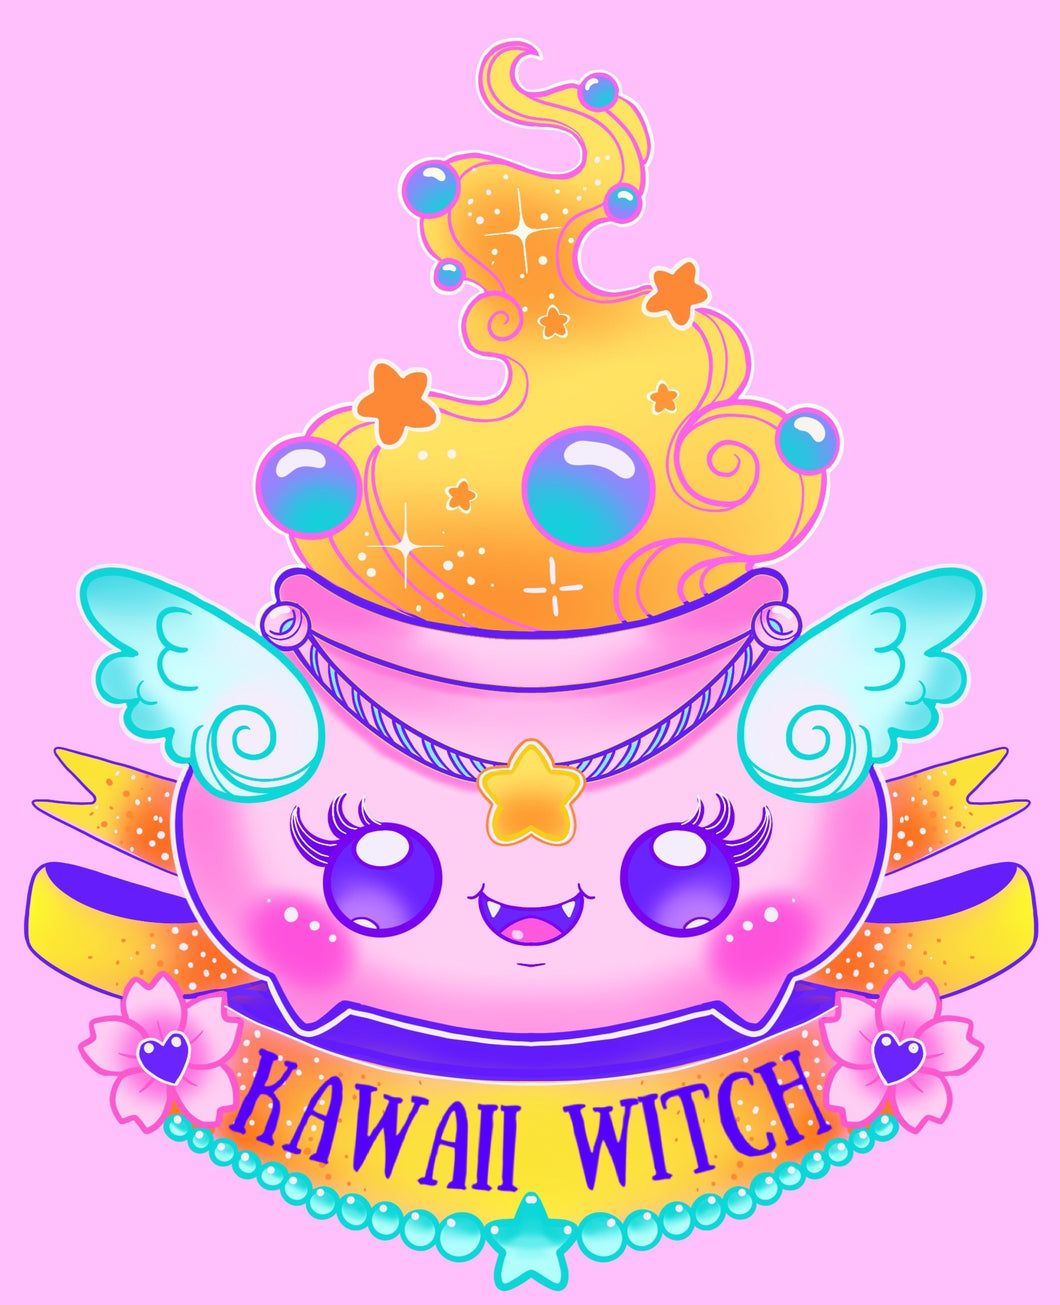 Kawaii Witch Mini Print